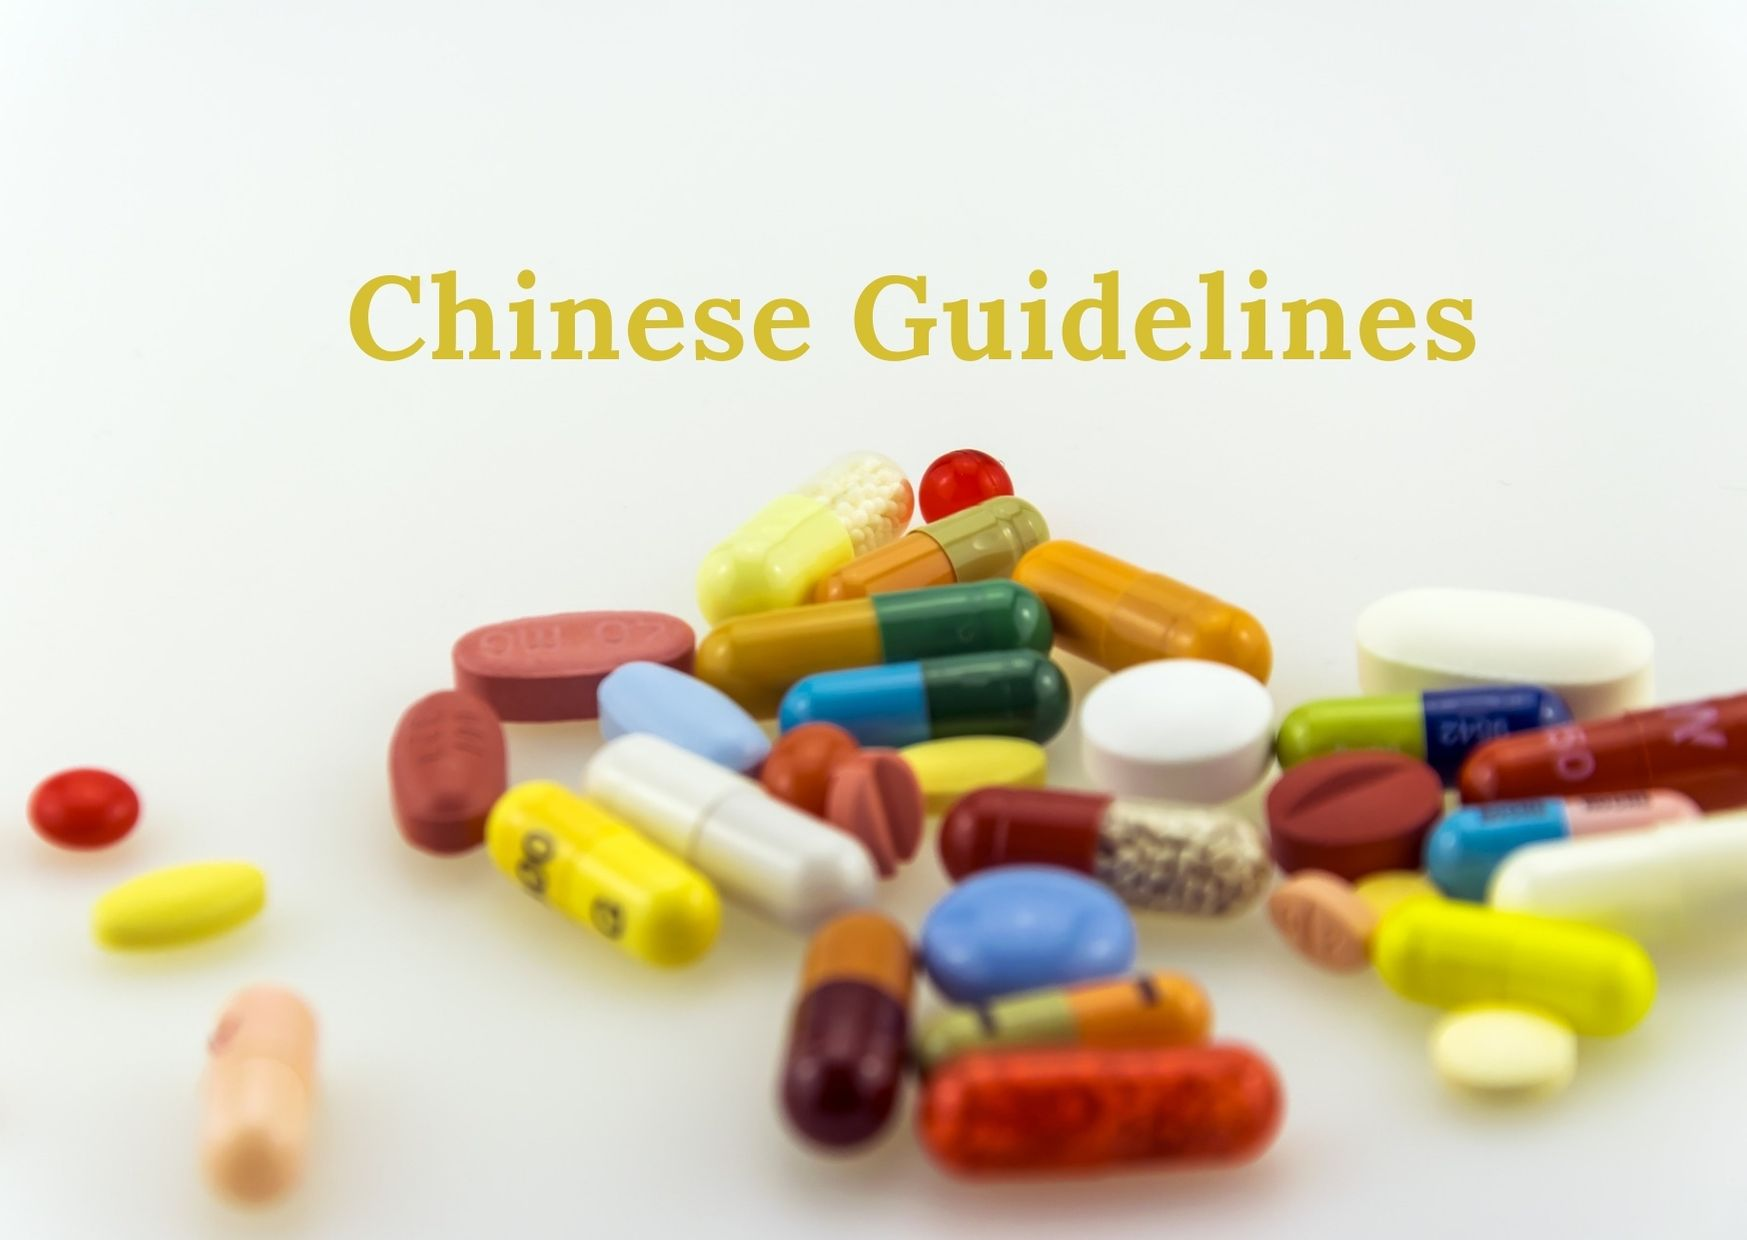 China advertising guidelines for drugs, medical devices and health food